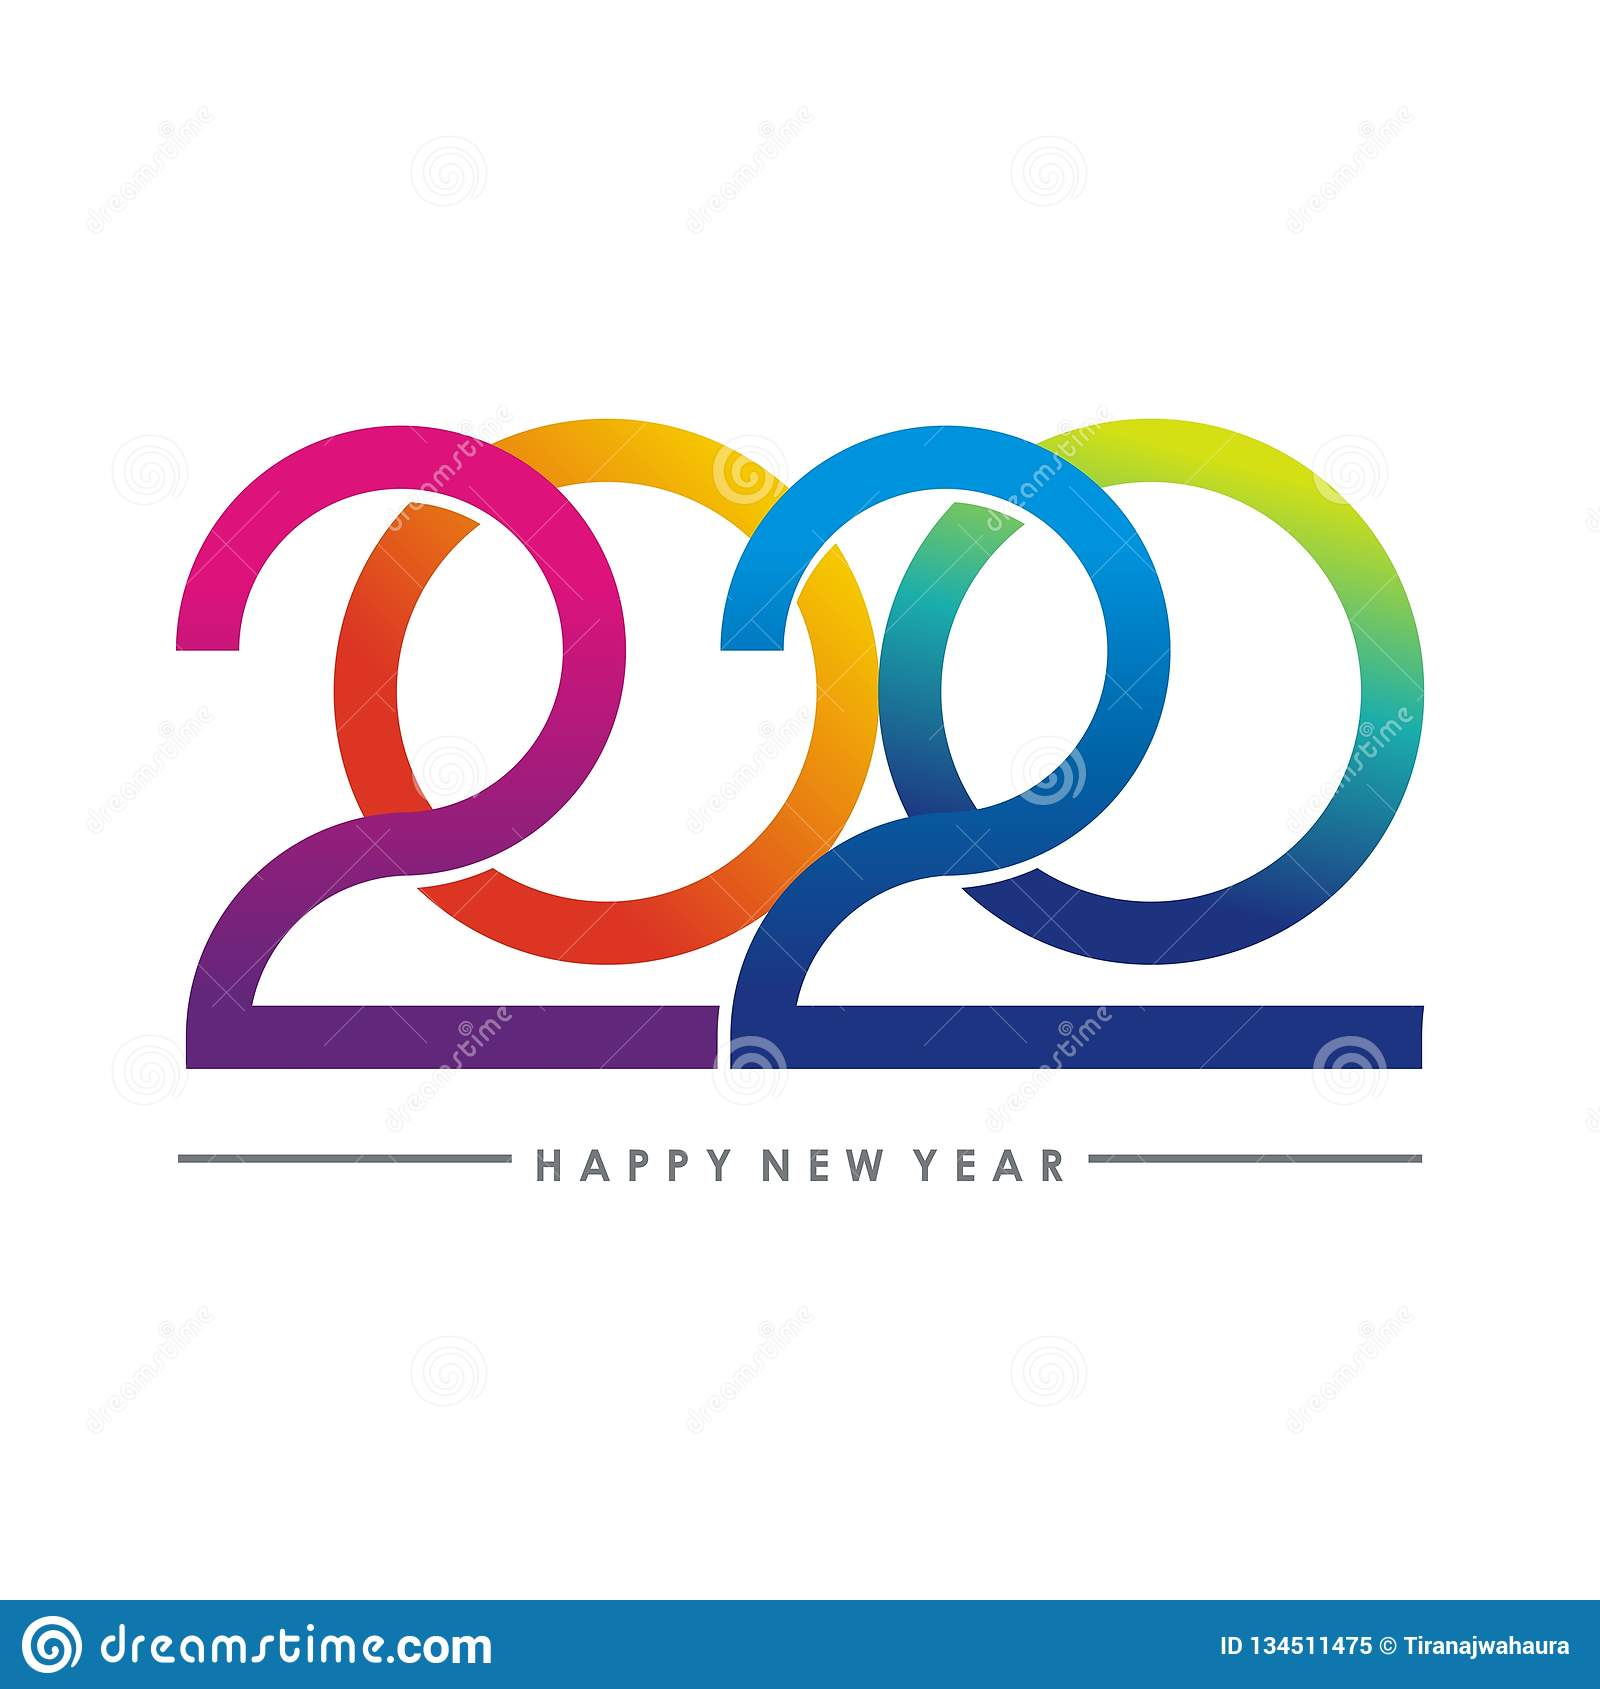 Happy new year 2020 text - number design